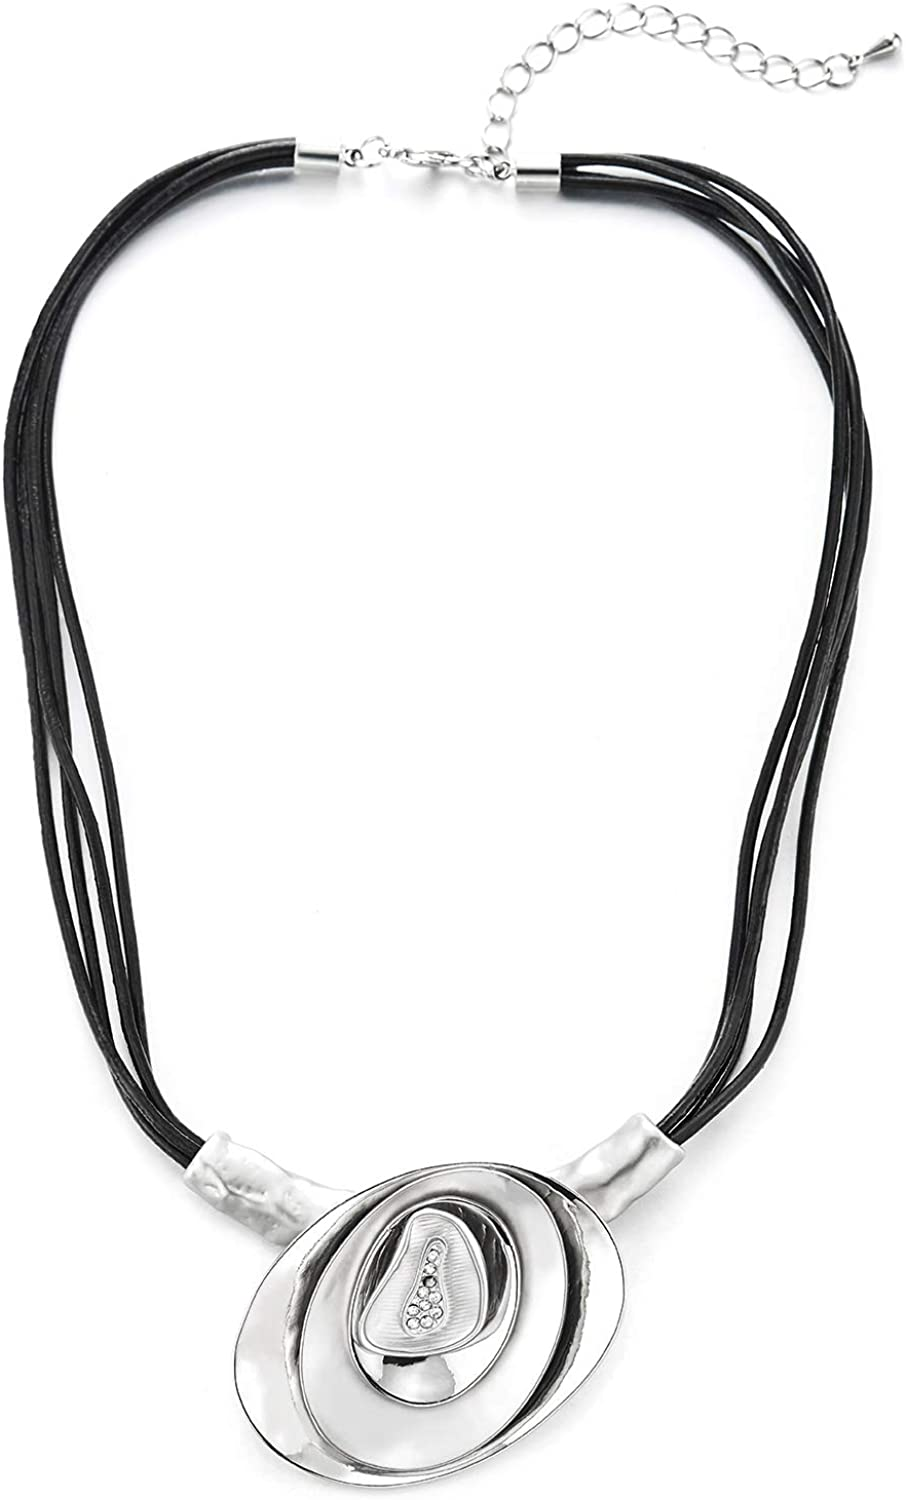 Fashion Chic Choker Collar Statement Necklace Rhinestones Stacked Oval Charm Pendant Leather Rope